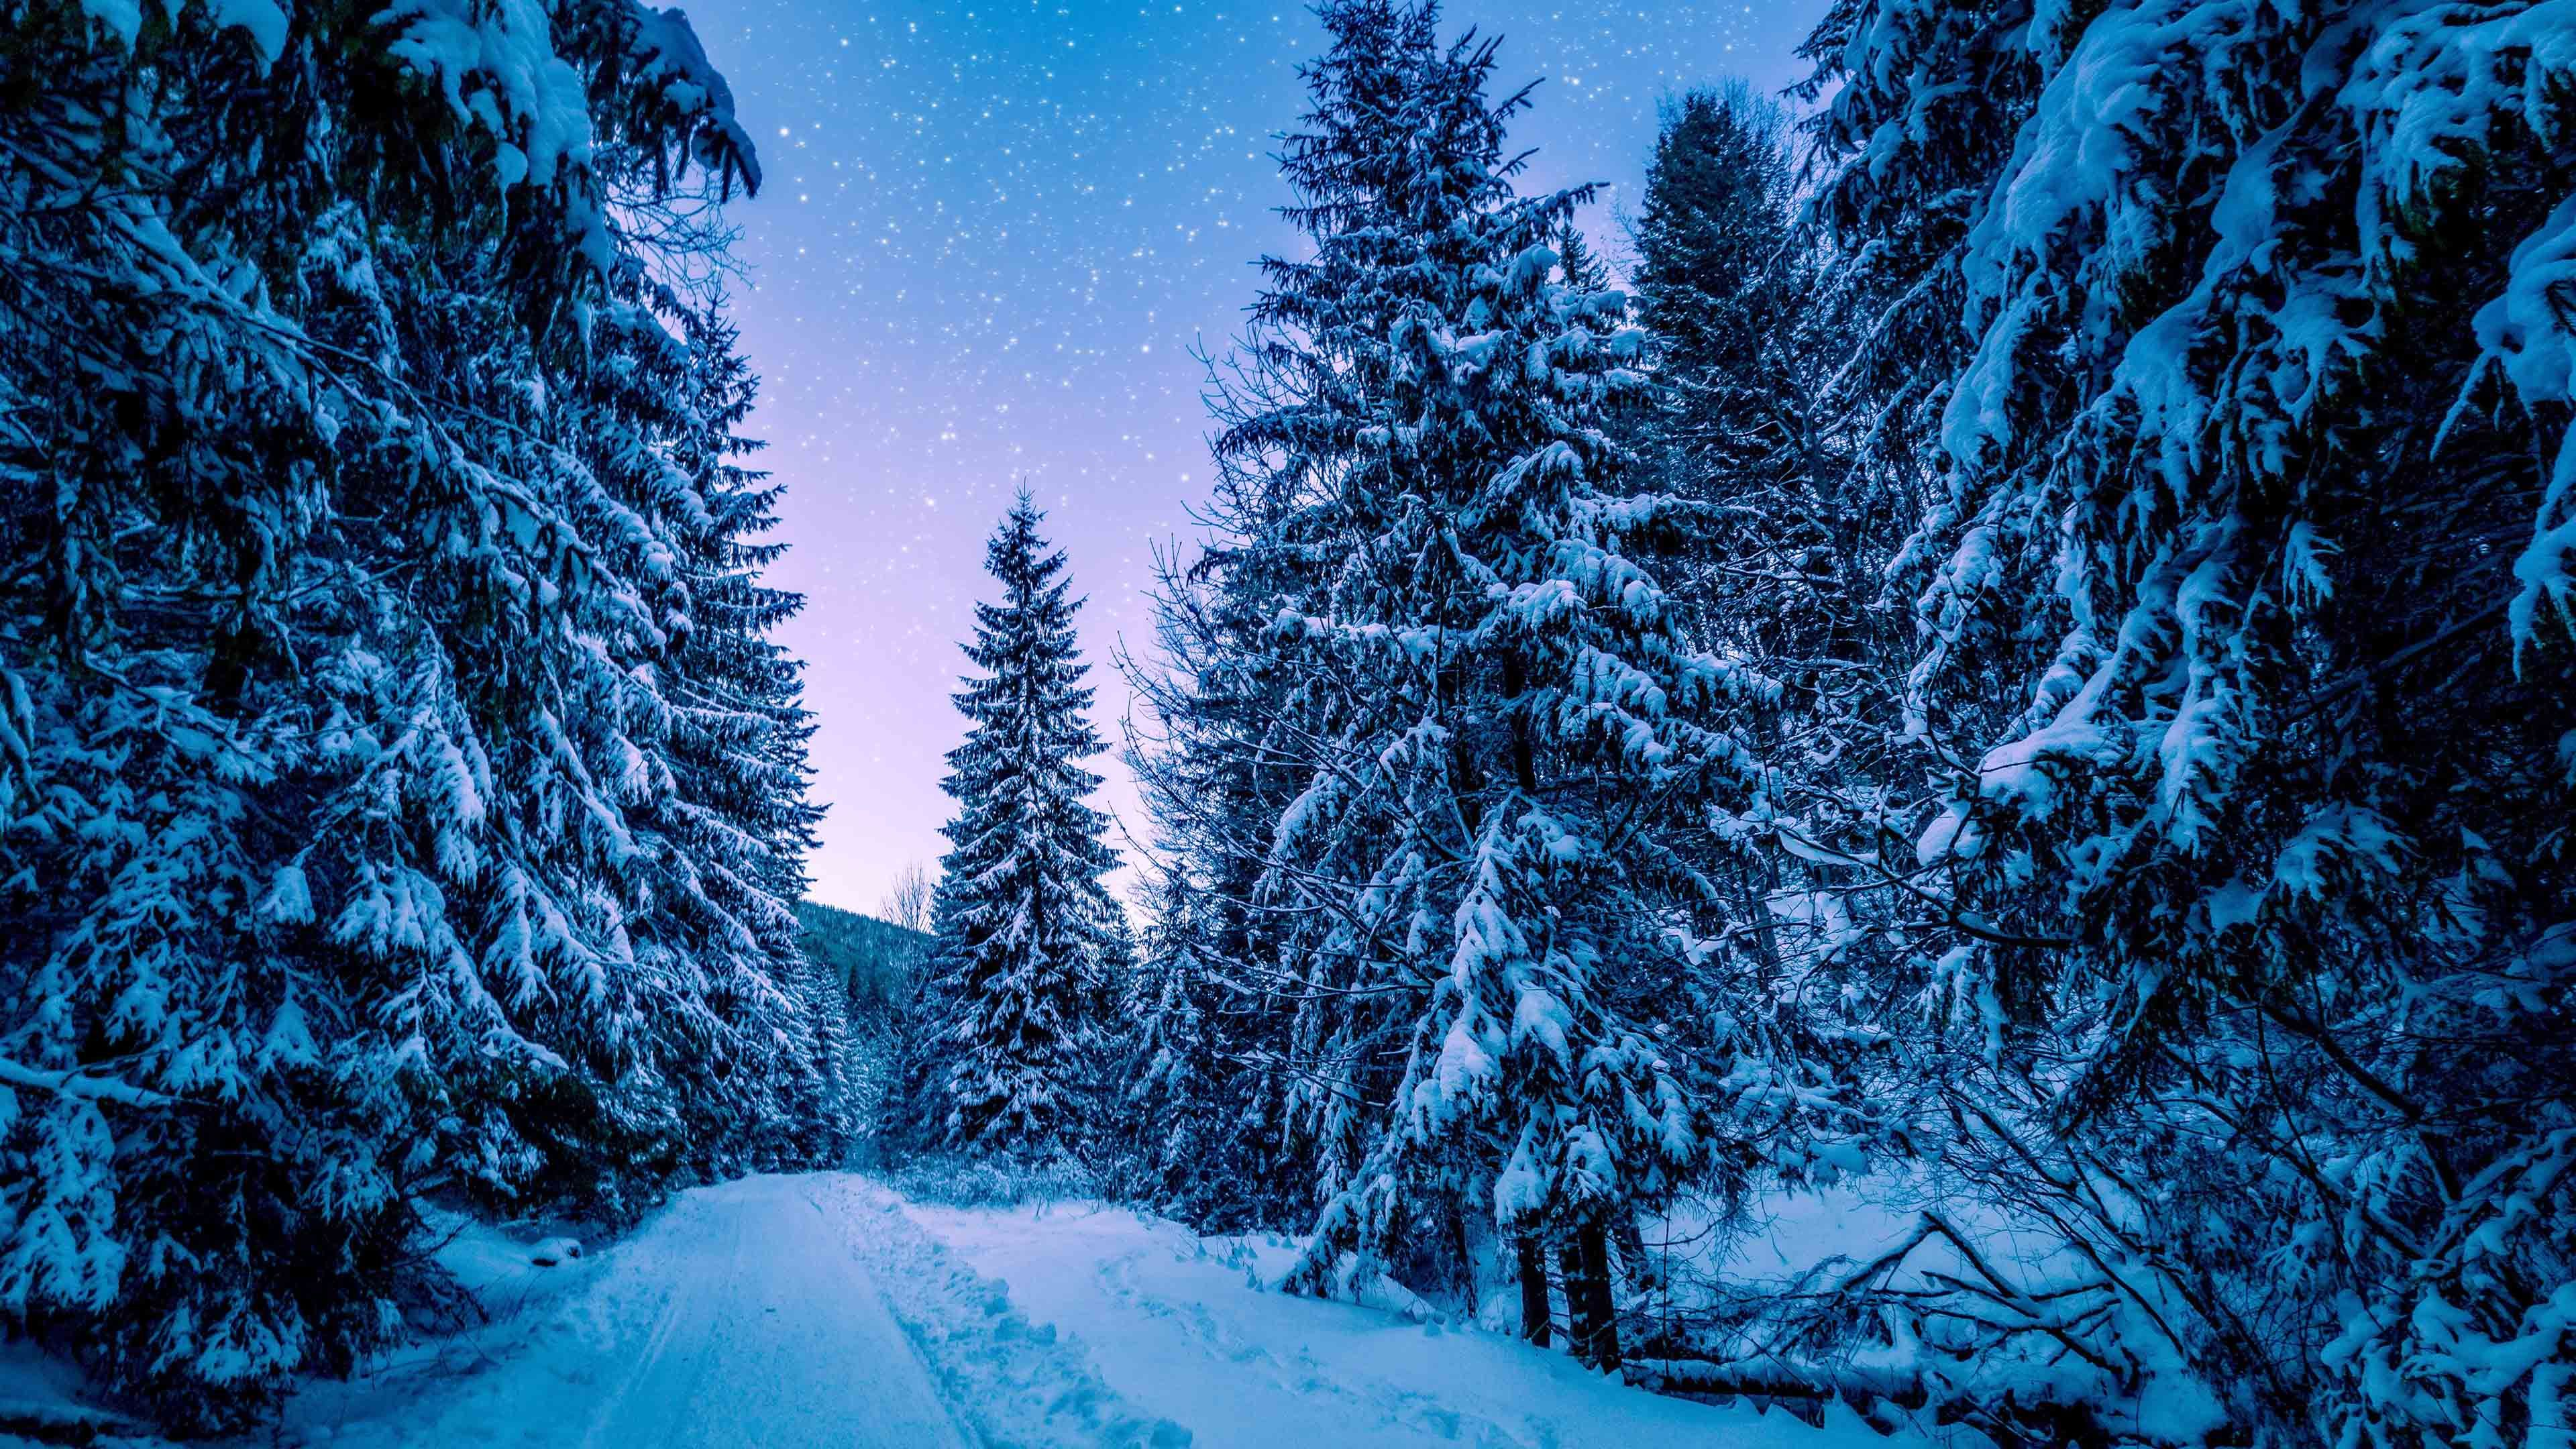 Snow Live Wallpaper Free Live Wallpapers Masterpieces Painting Paint By Number